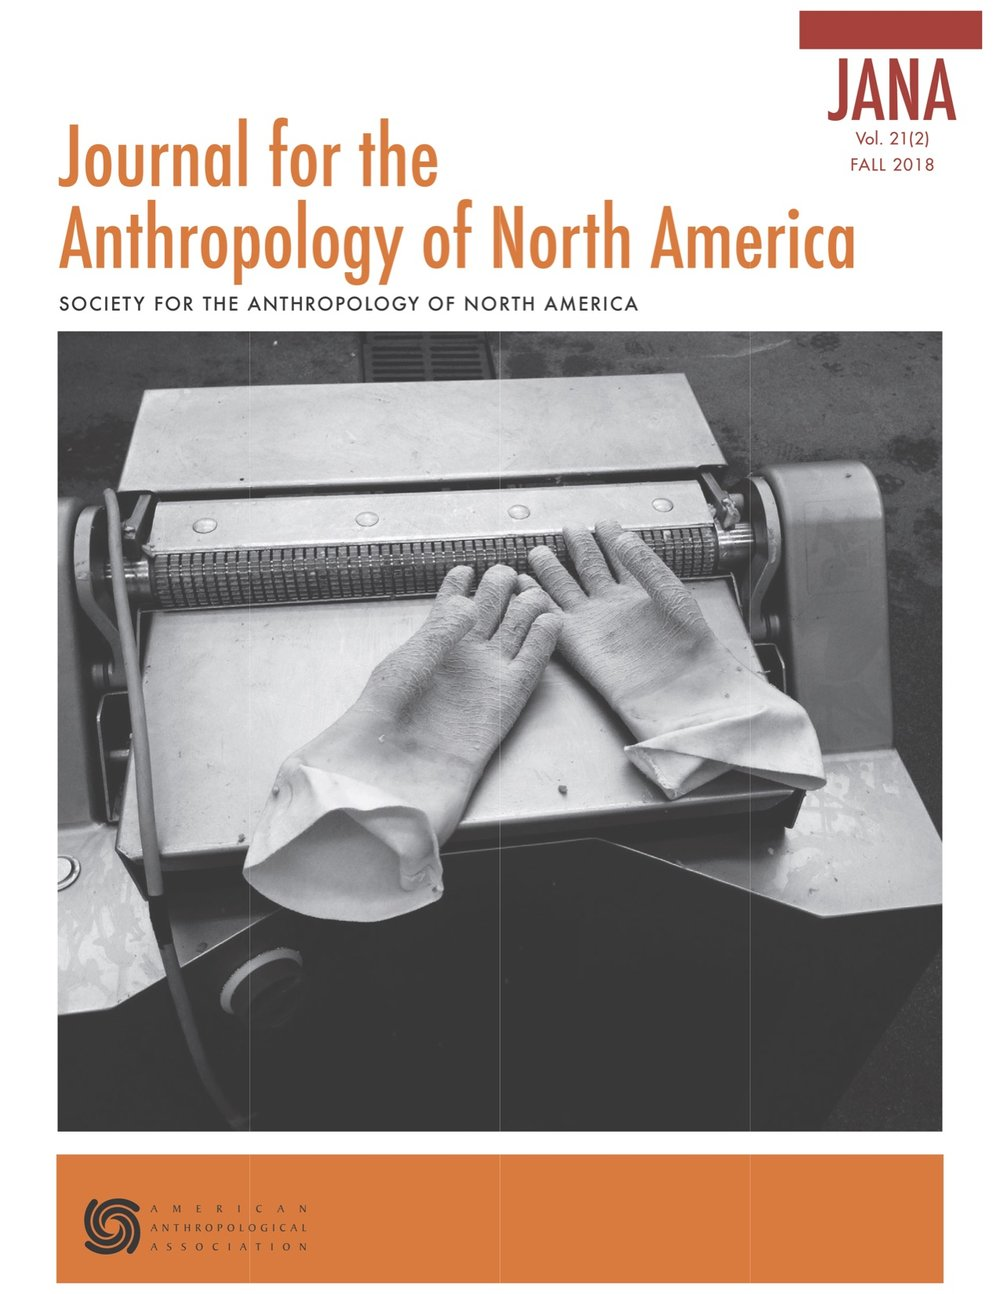 11/14/2018 : The Fall 2018 issue of the  Journal for the Anthropology of North America  features a photo from my fieldwork on the cover and my short photo essay about group housing for industrially-raised pigs inside.